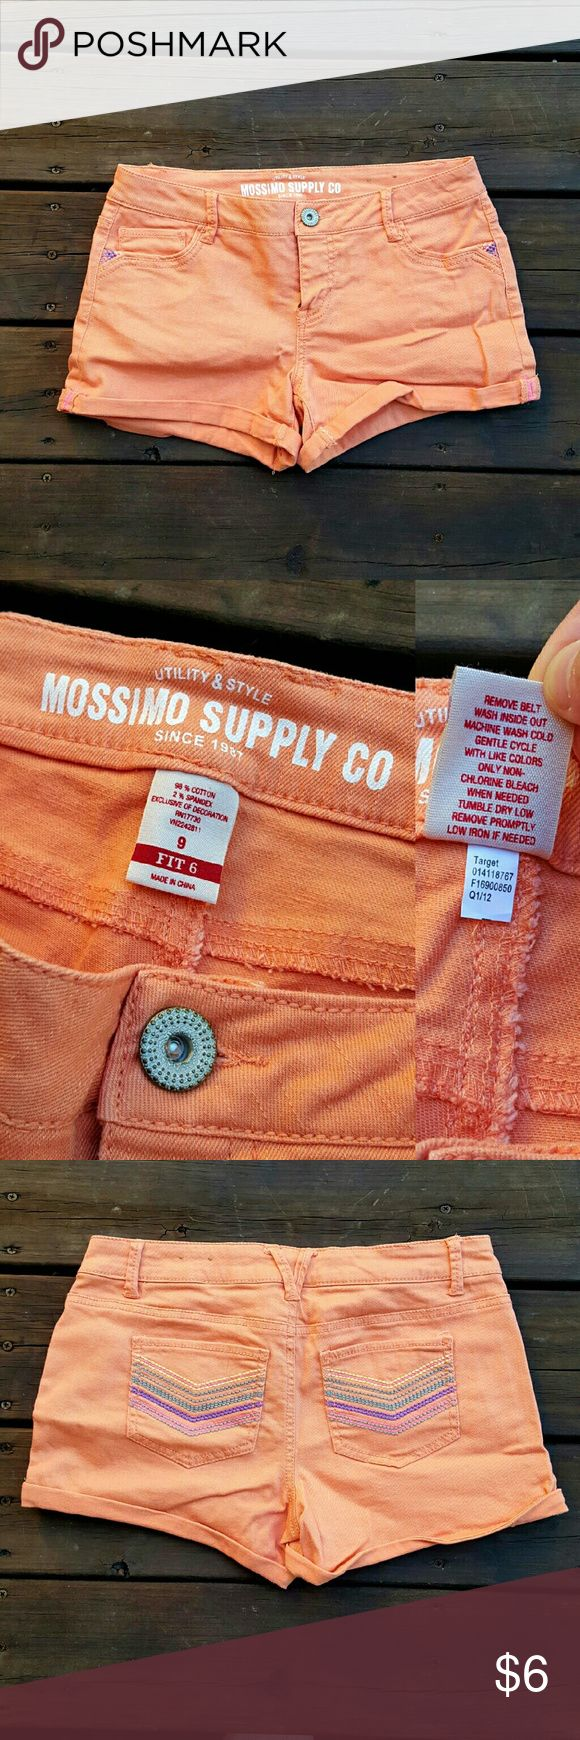 Mossimo Peach Jean Shorts These have been worn only a few times. There aren't any signs of wear except the small stains on the butt, shown in pic #4.   Size 9 juniors Mossimo Supply Co. Shorts Jean Shorts